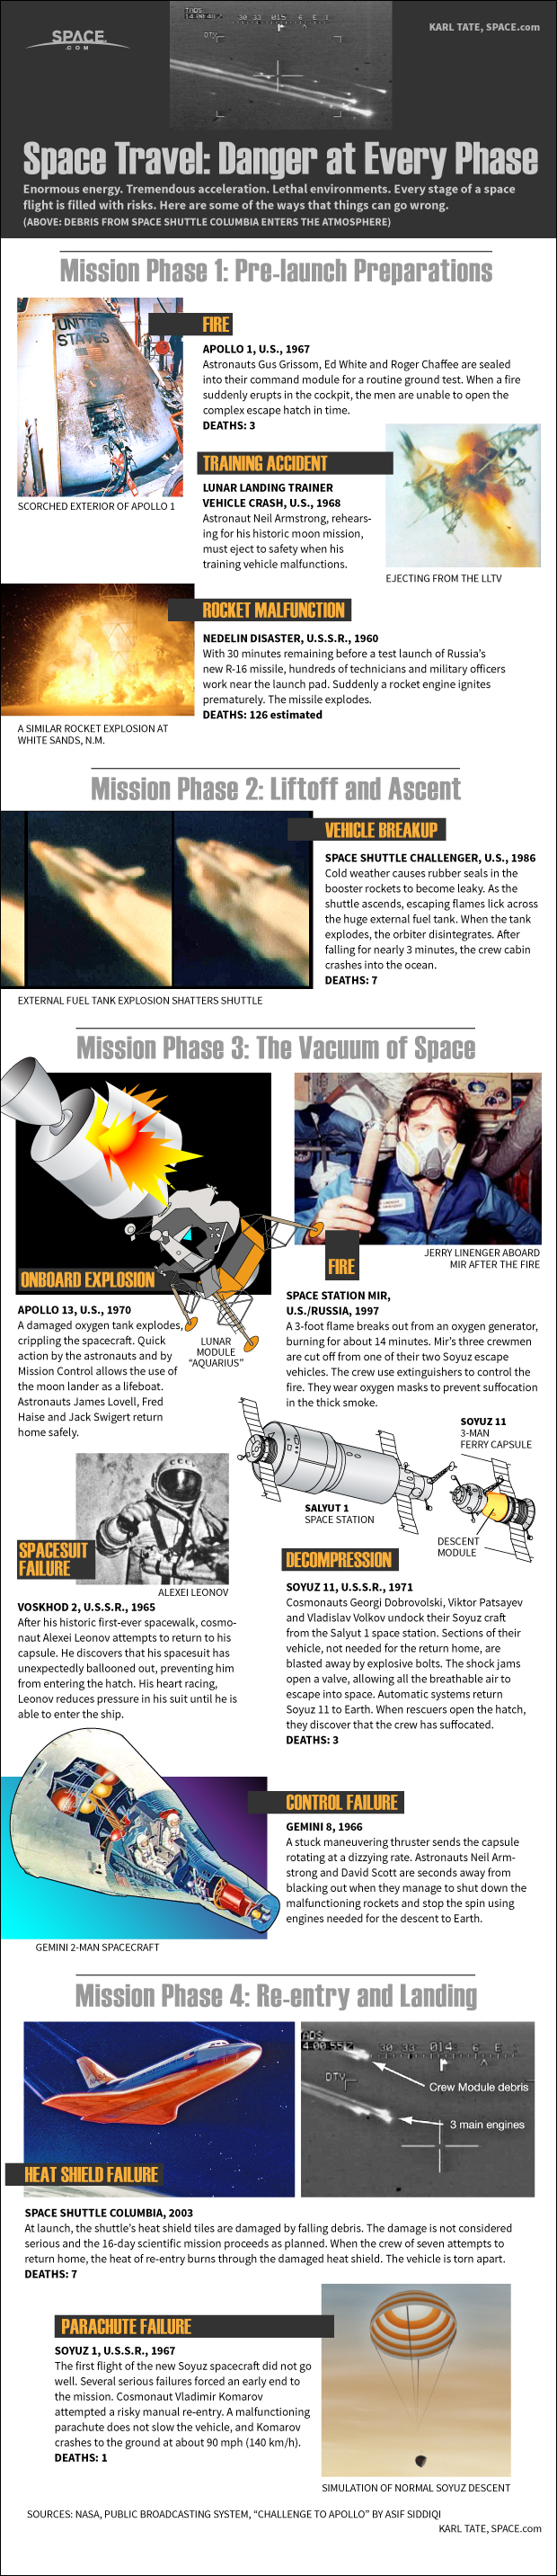 Space Travel: Danger at Every Phase (Infographic)